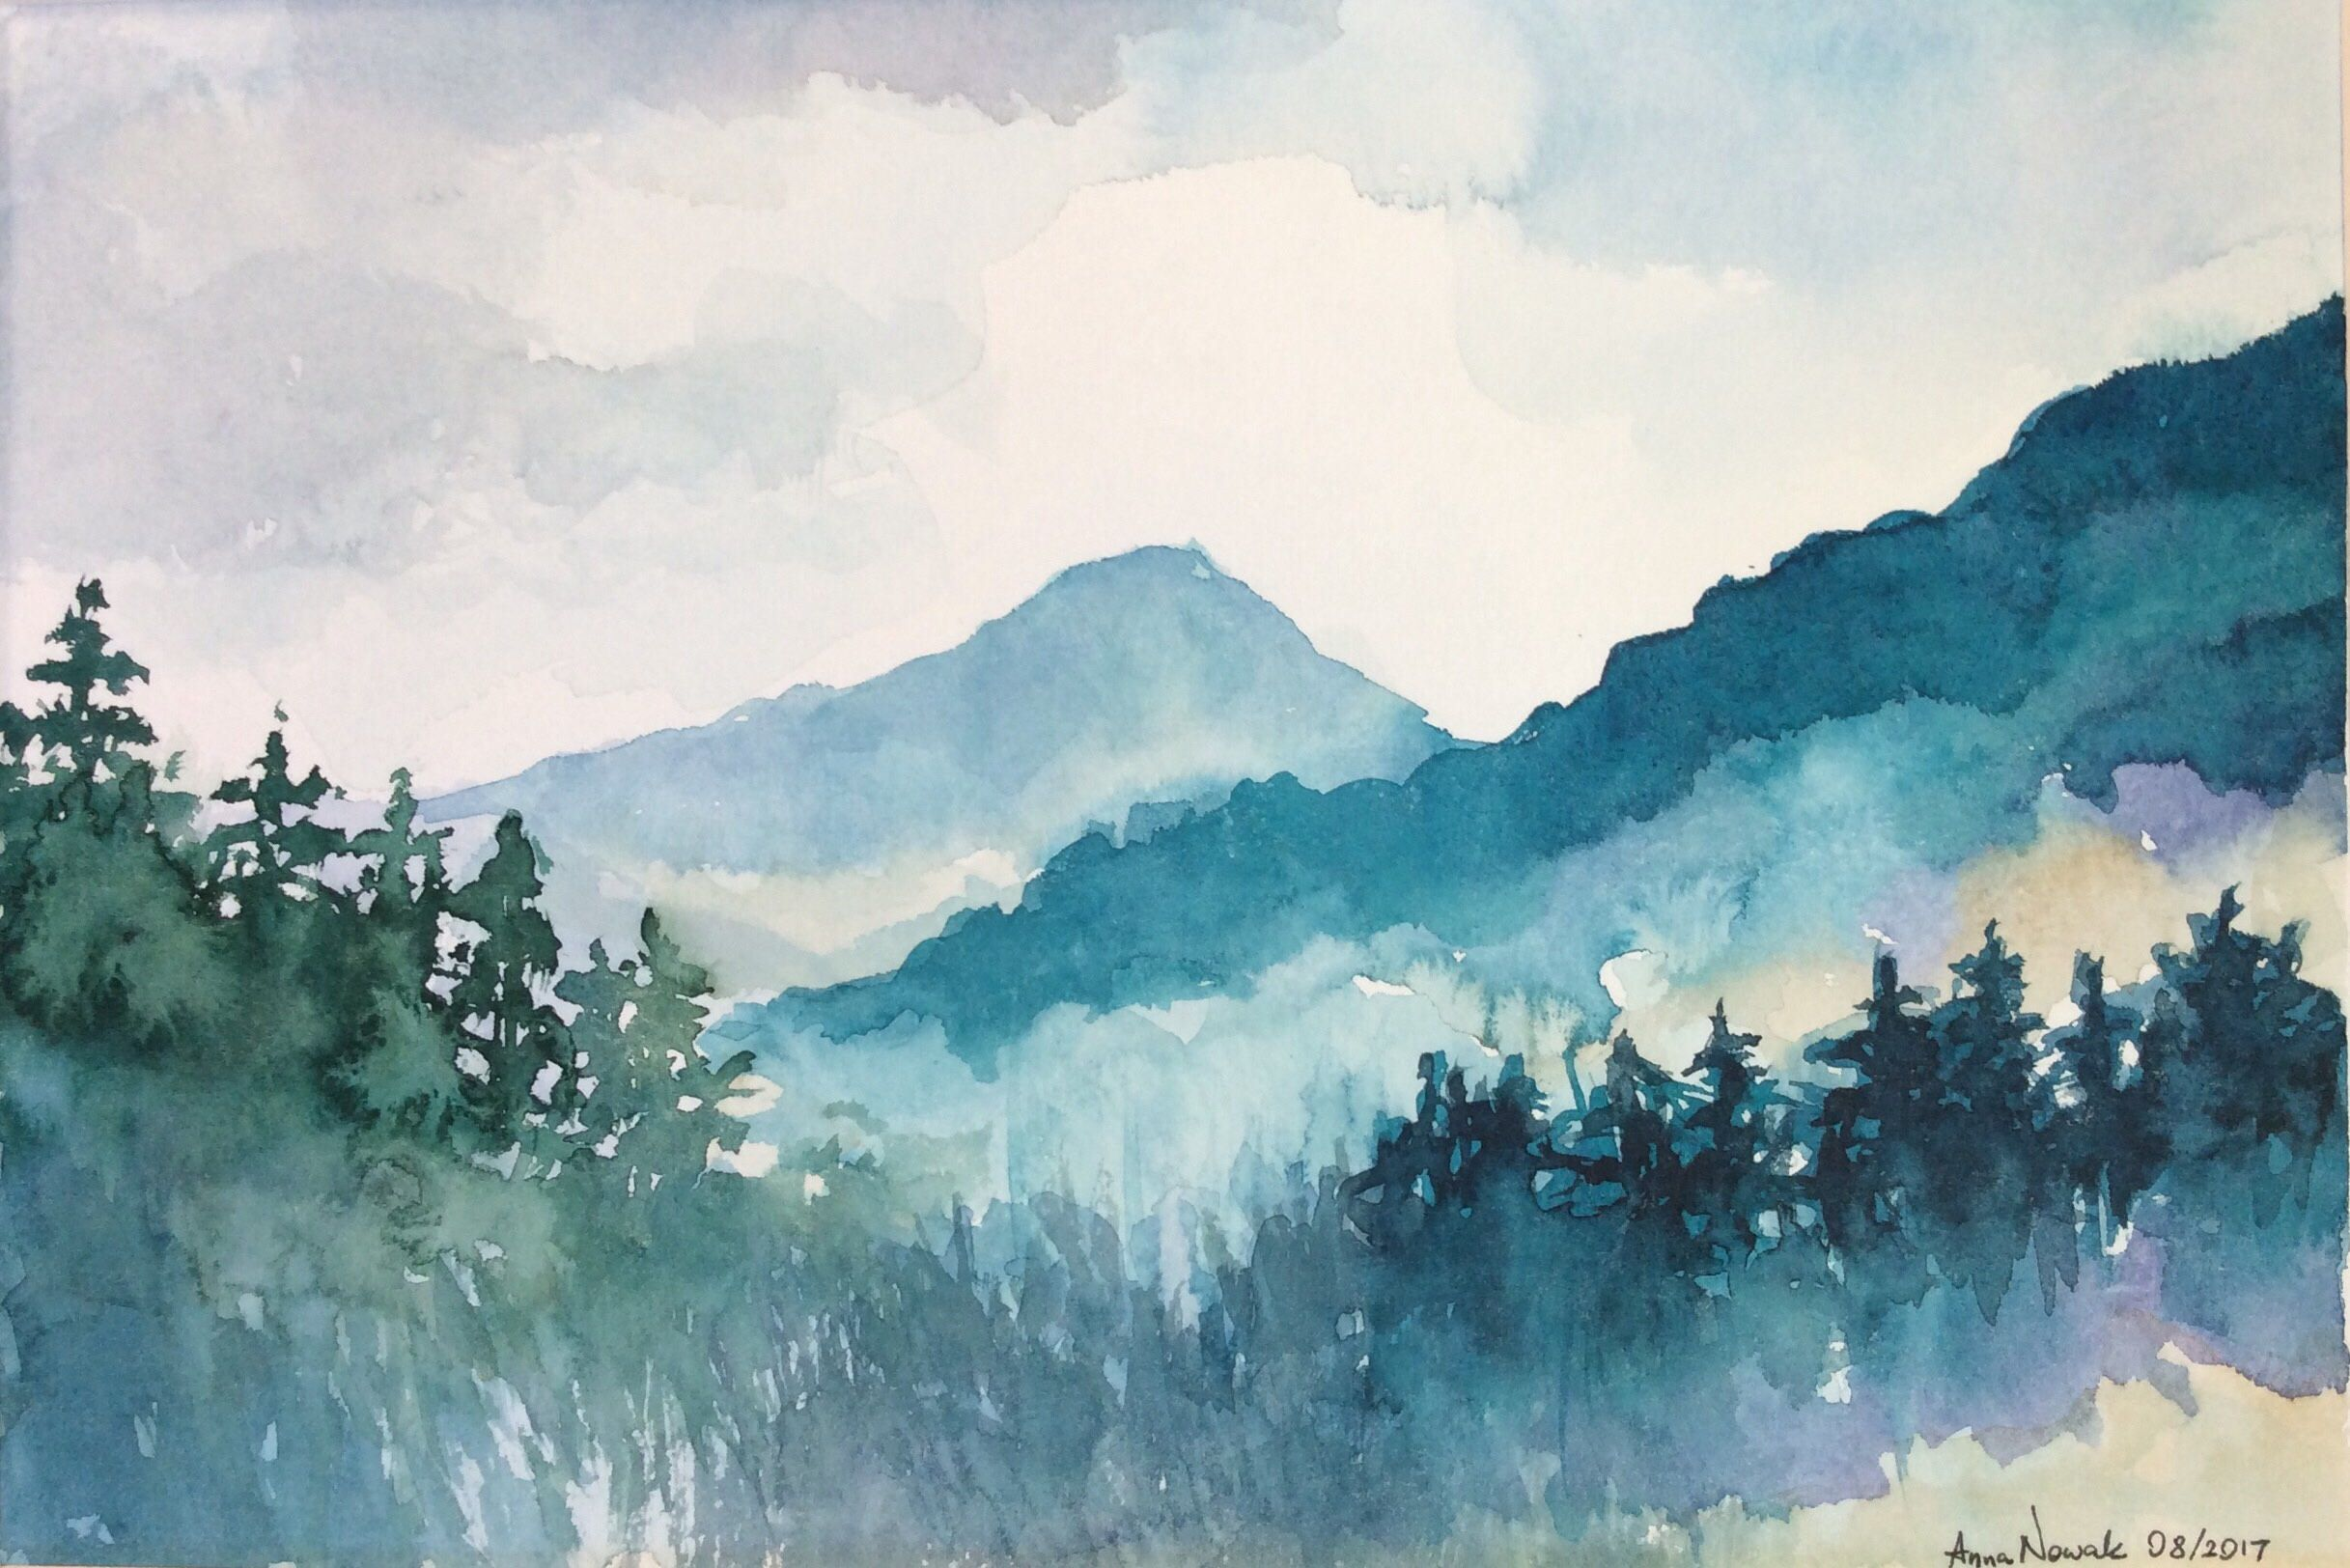 Matted Blue Mountains Original Watercolor Painting Landscape Watercolor Handmade Art Forest Mountain Painting Landscape Paintings Mountain Paintings Watercolor Landscape